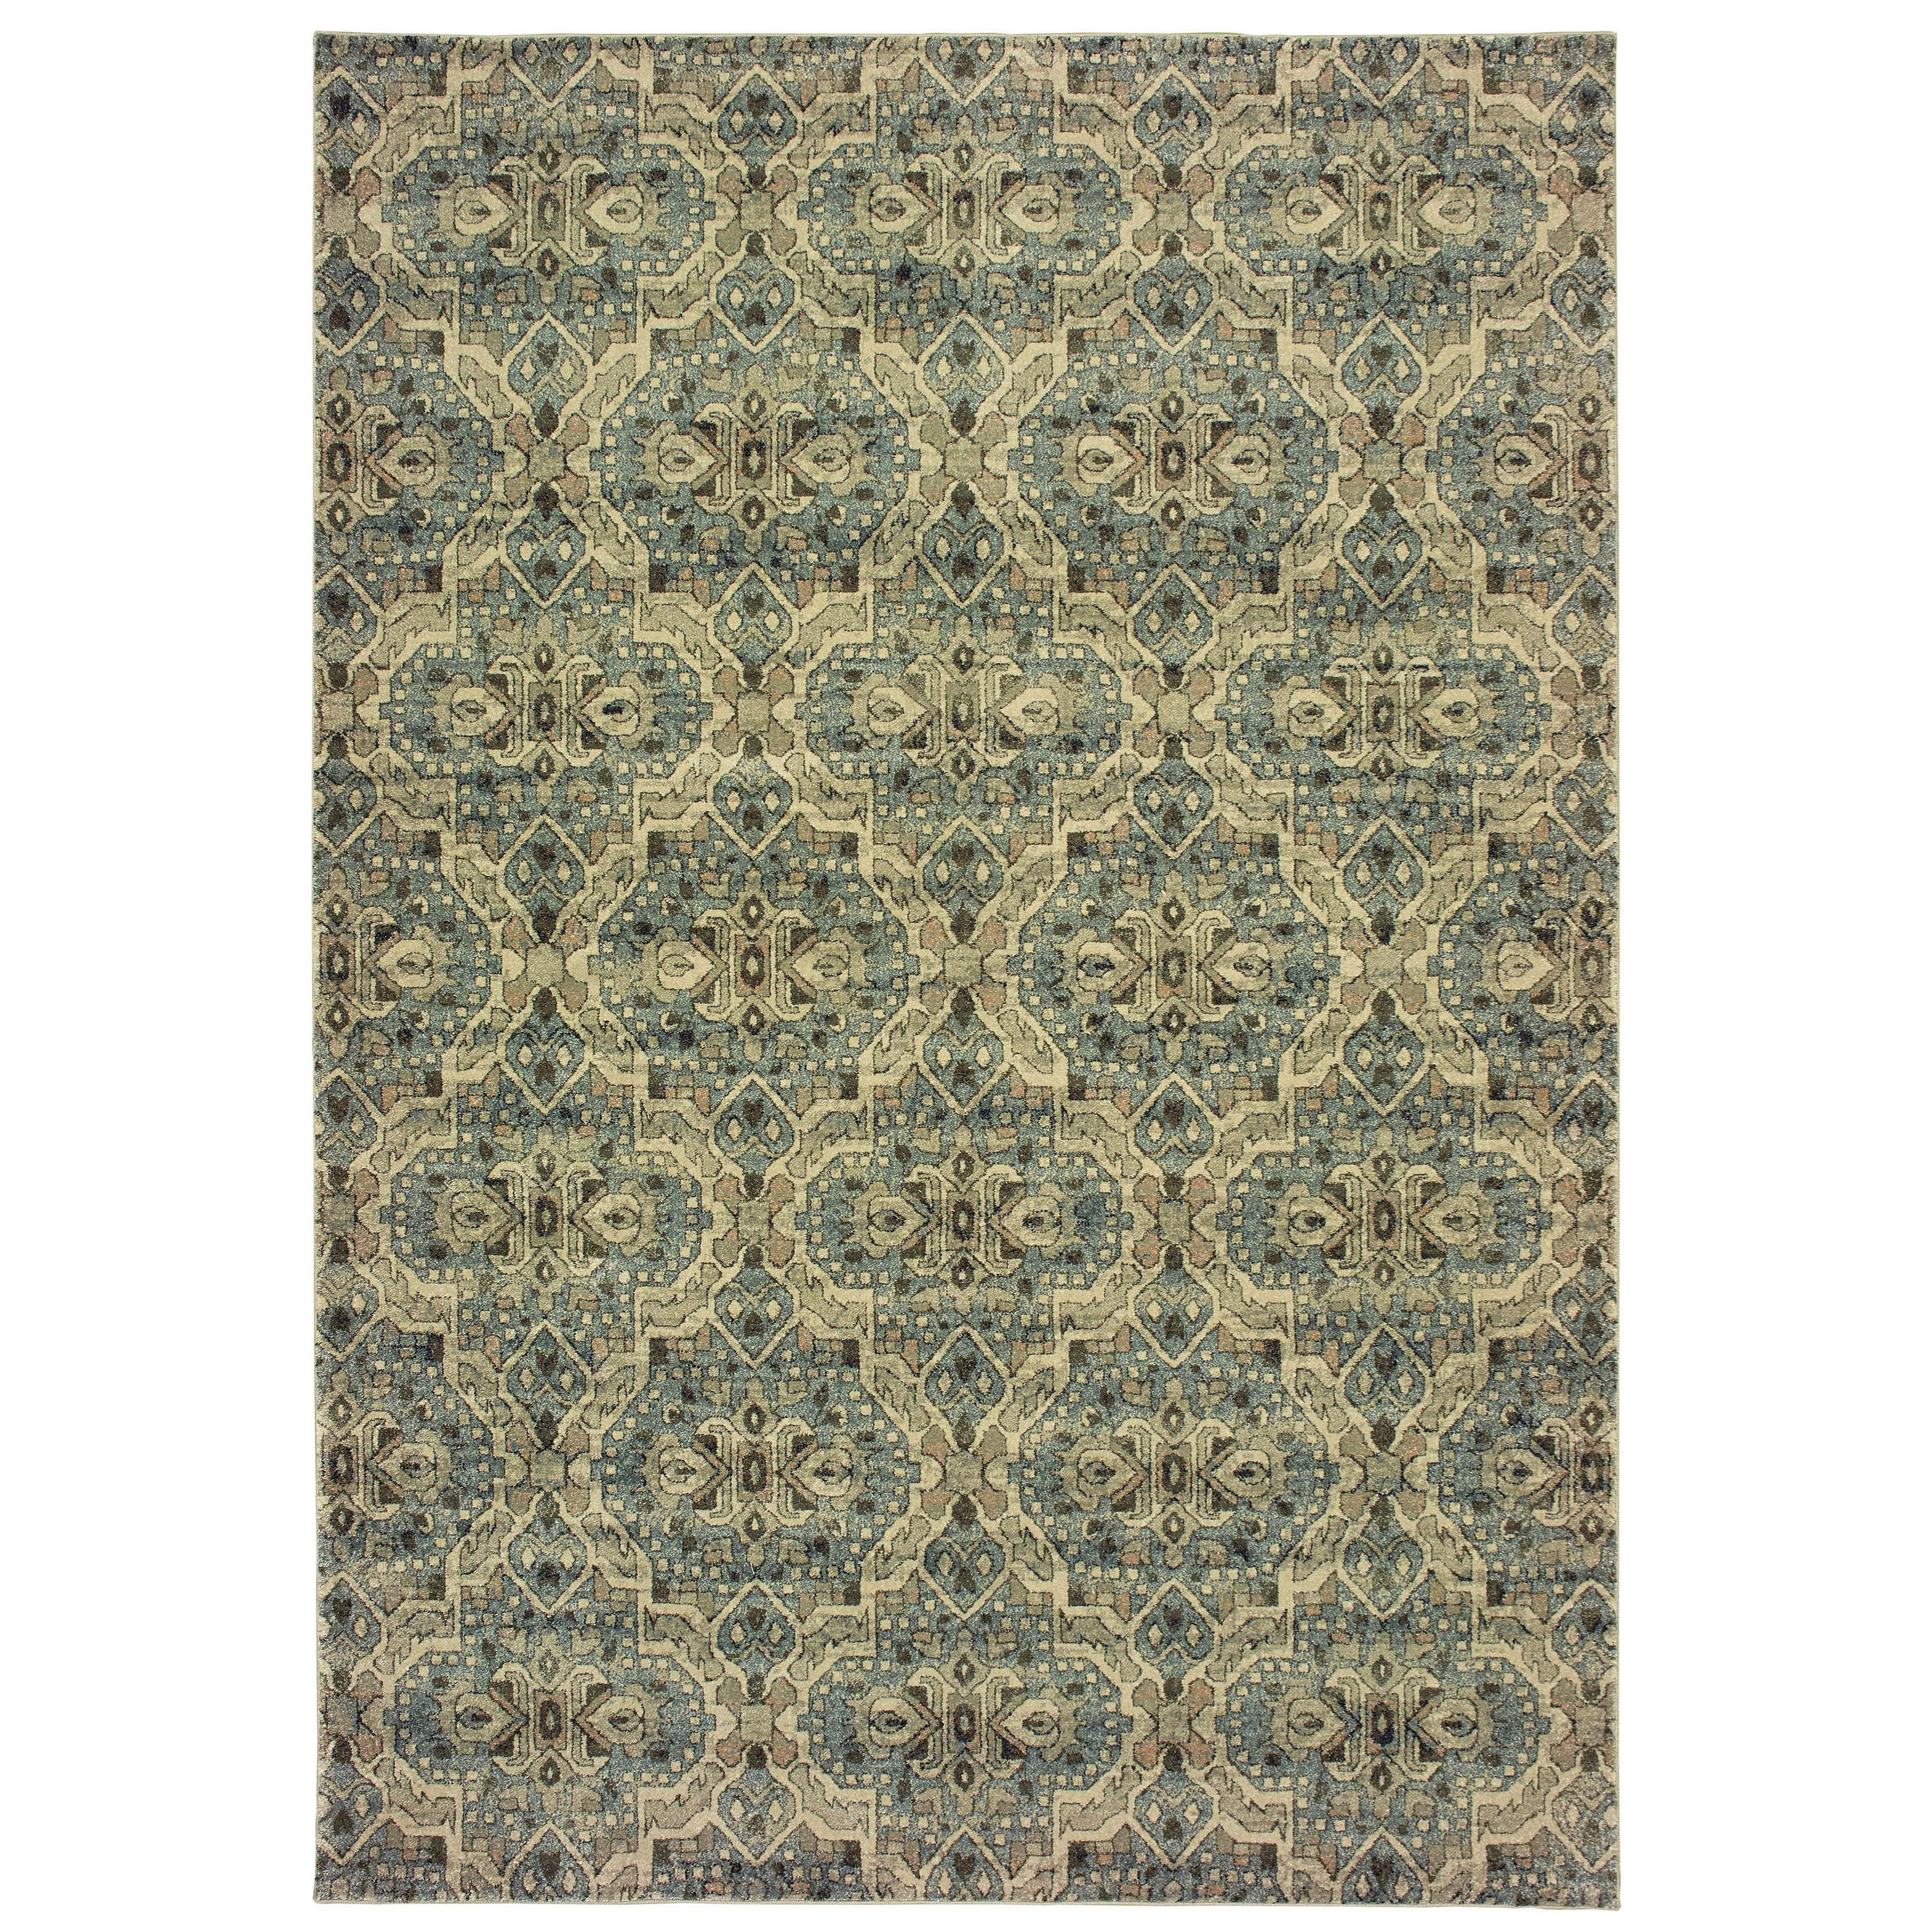 "Raleigh 5' 3"" X 7' 6"" Rug by Oriental Weavers at HomeWorld Furniture"